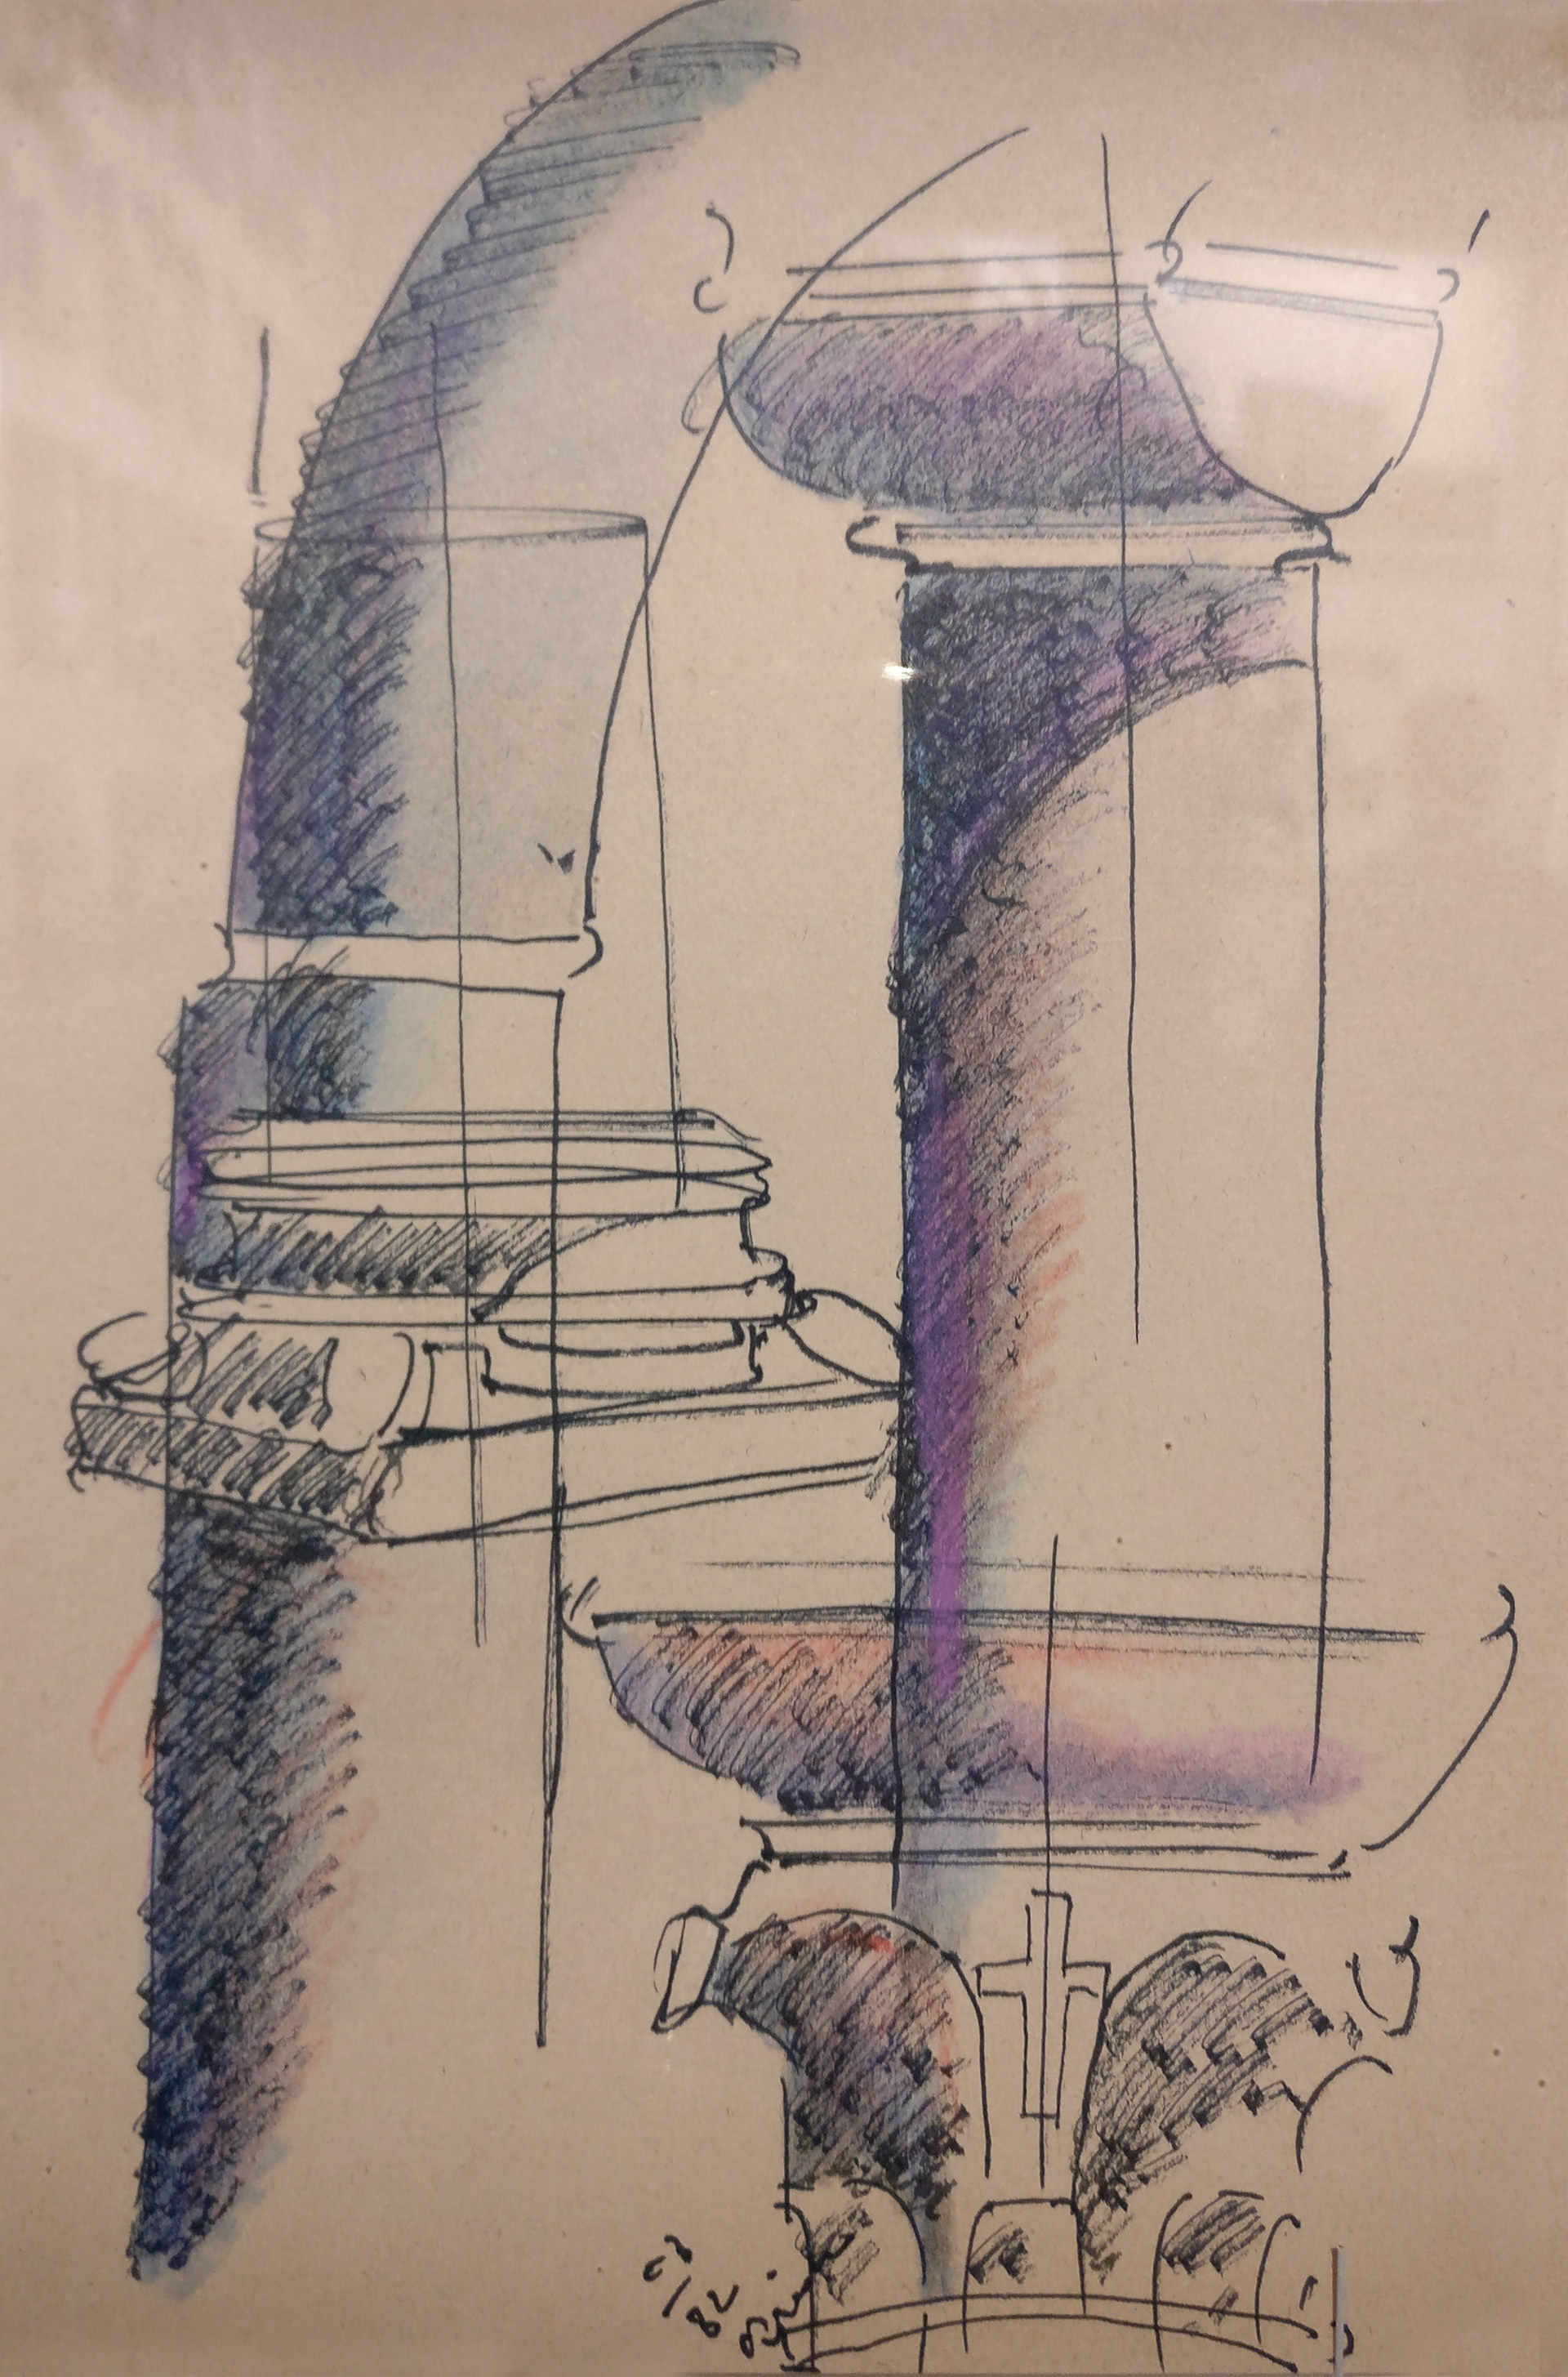 Sketch by Tadao Ando, at The Challenge, on display at Armani/Silos| The Challenge| Tadao Ando| Armani/Silos| STIR